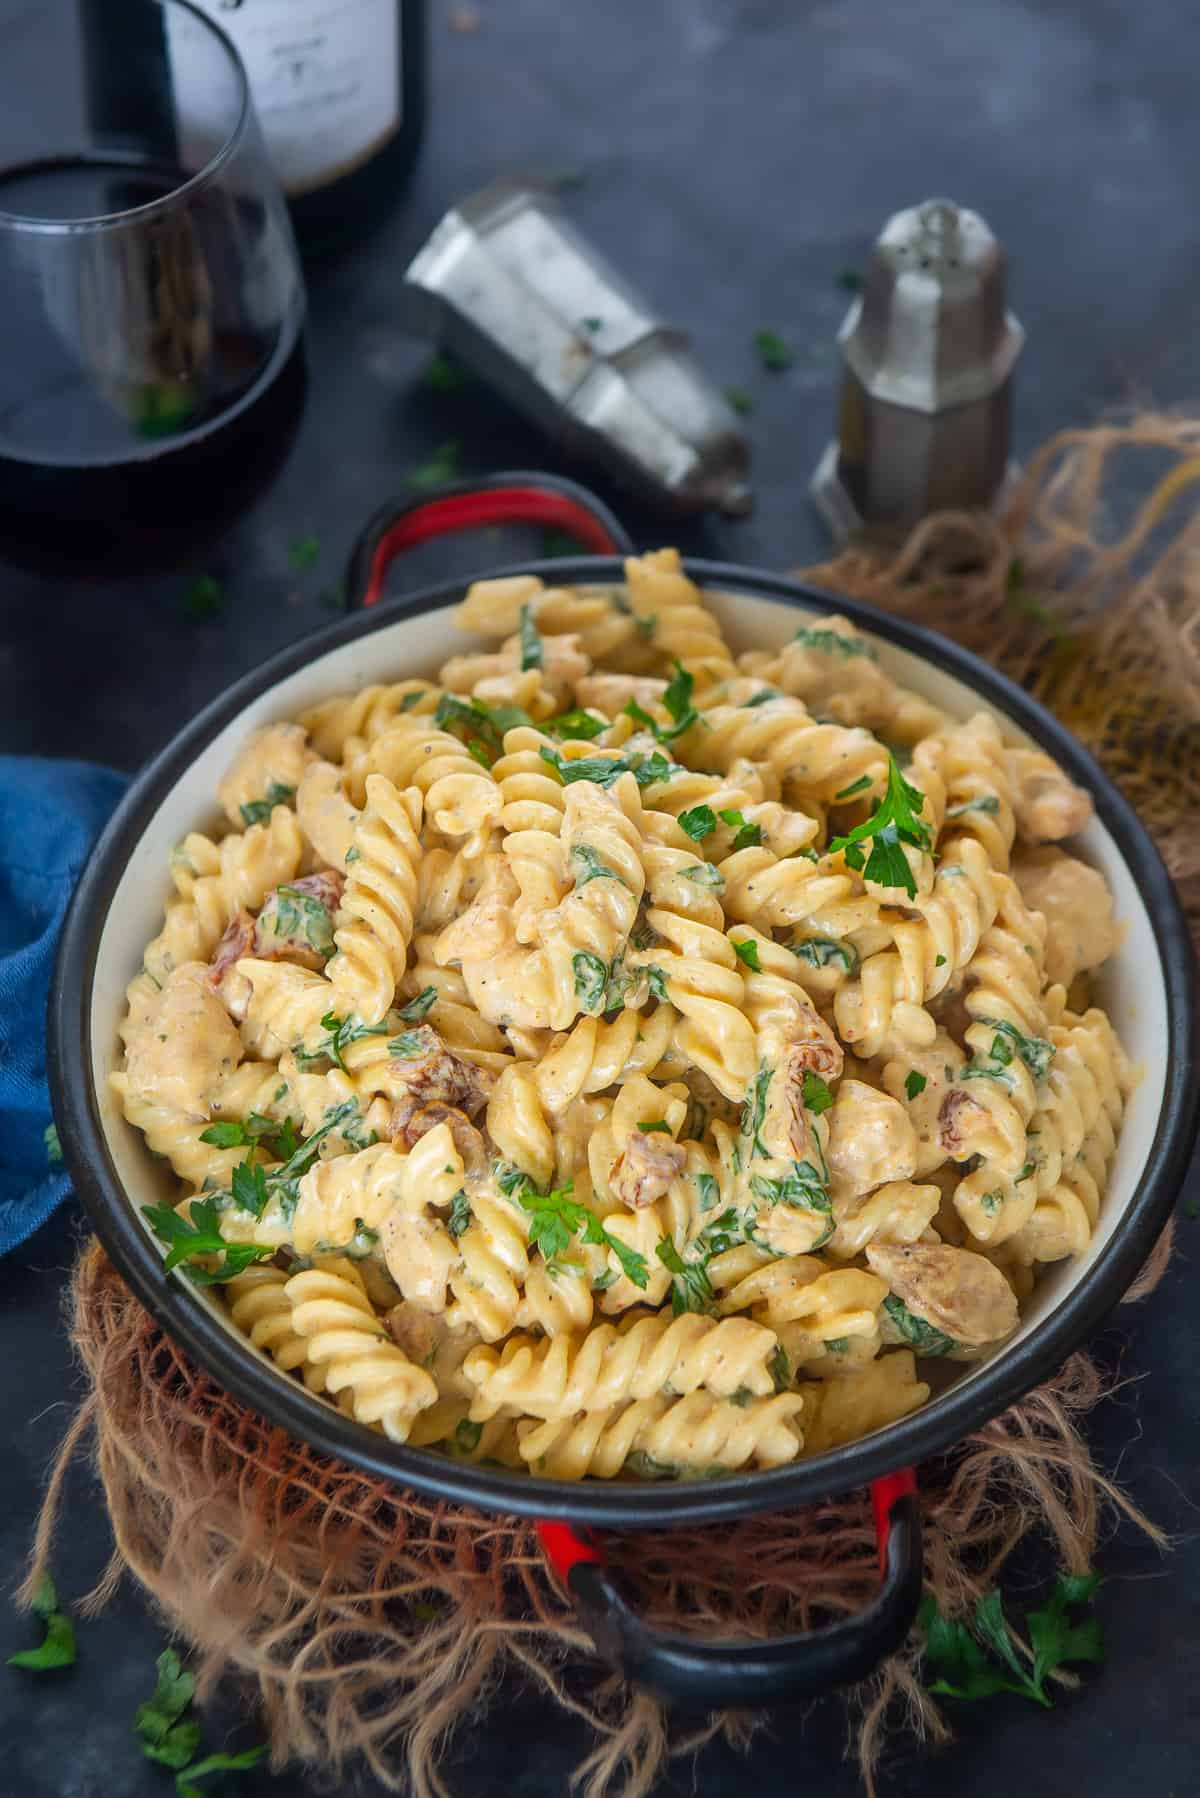 Chicken Florentine Pasta served in a bowl.